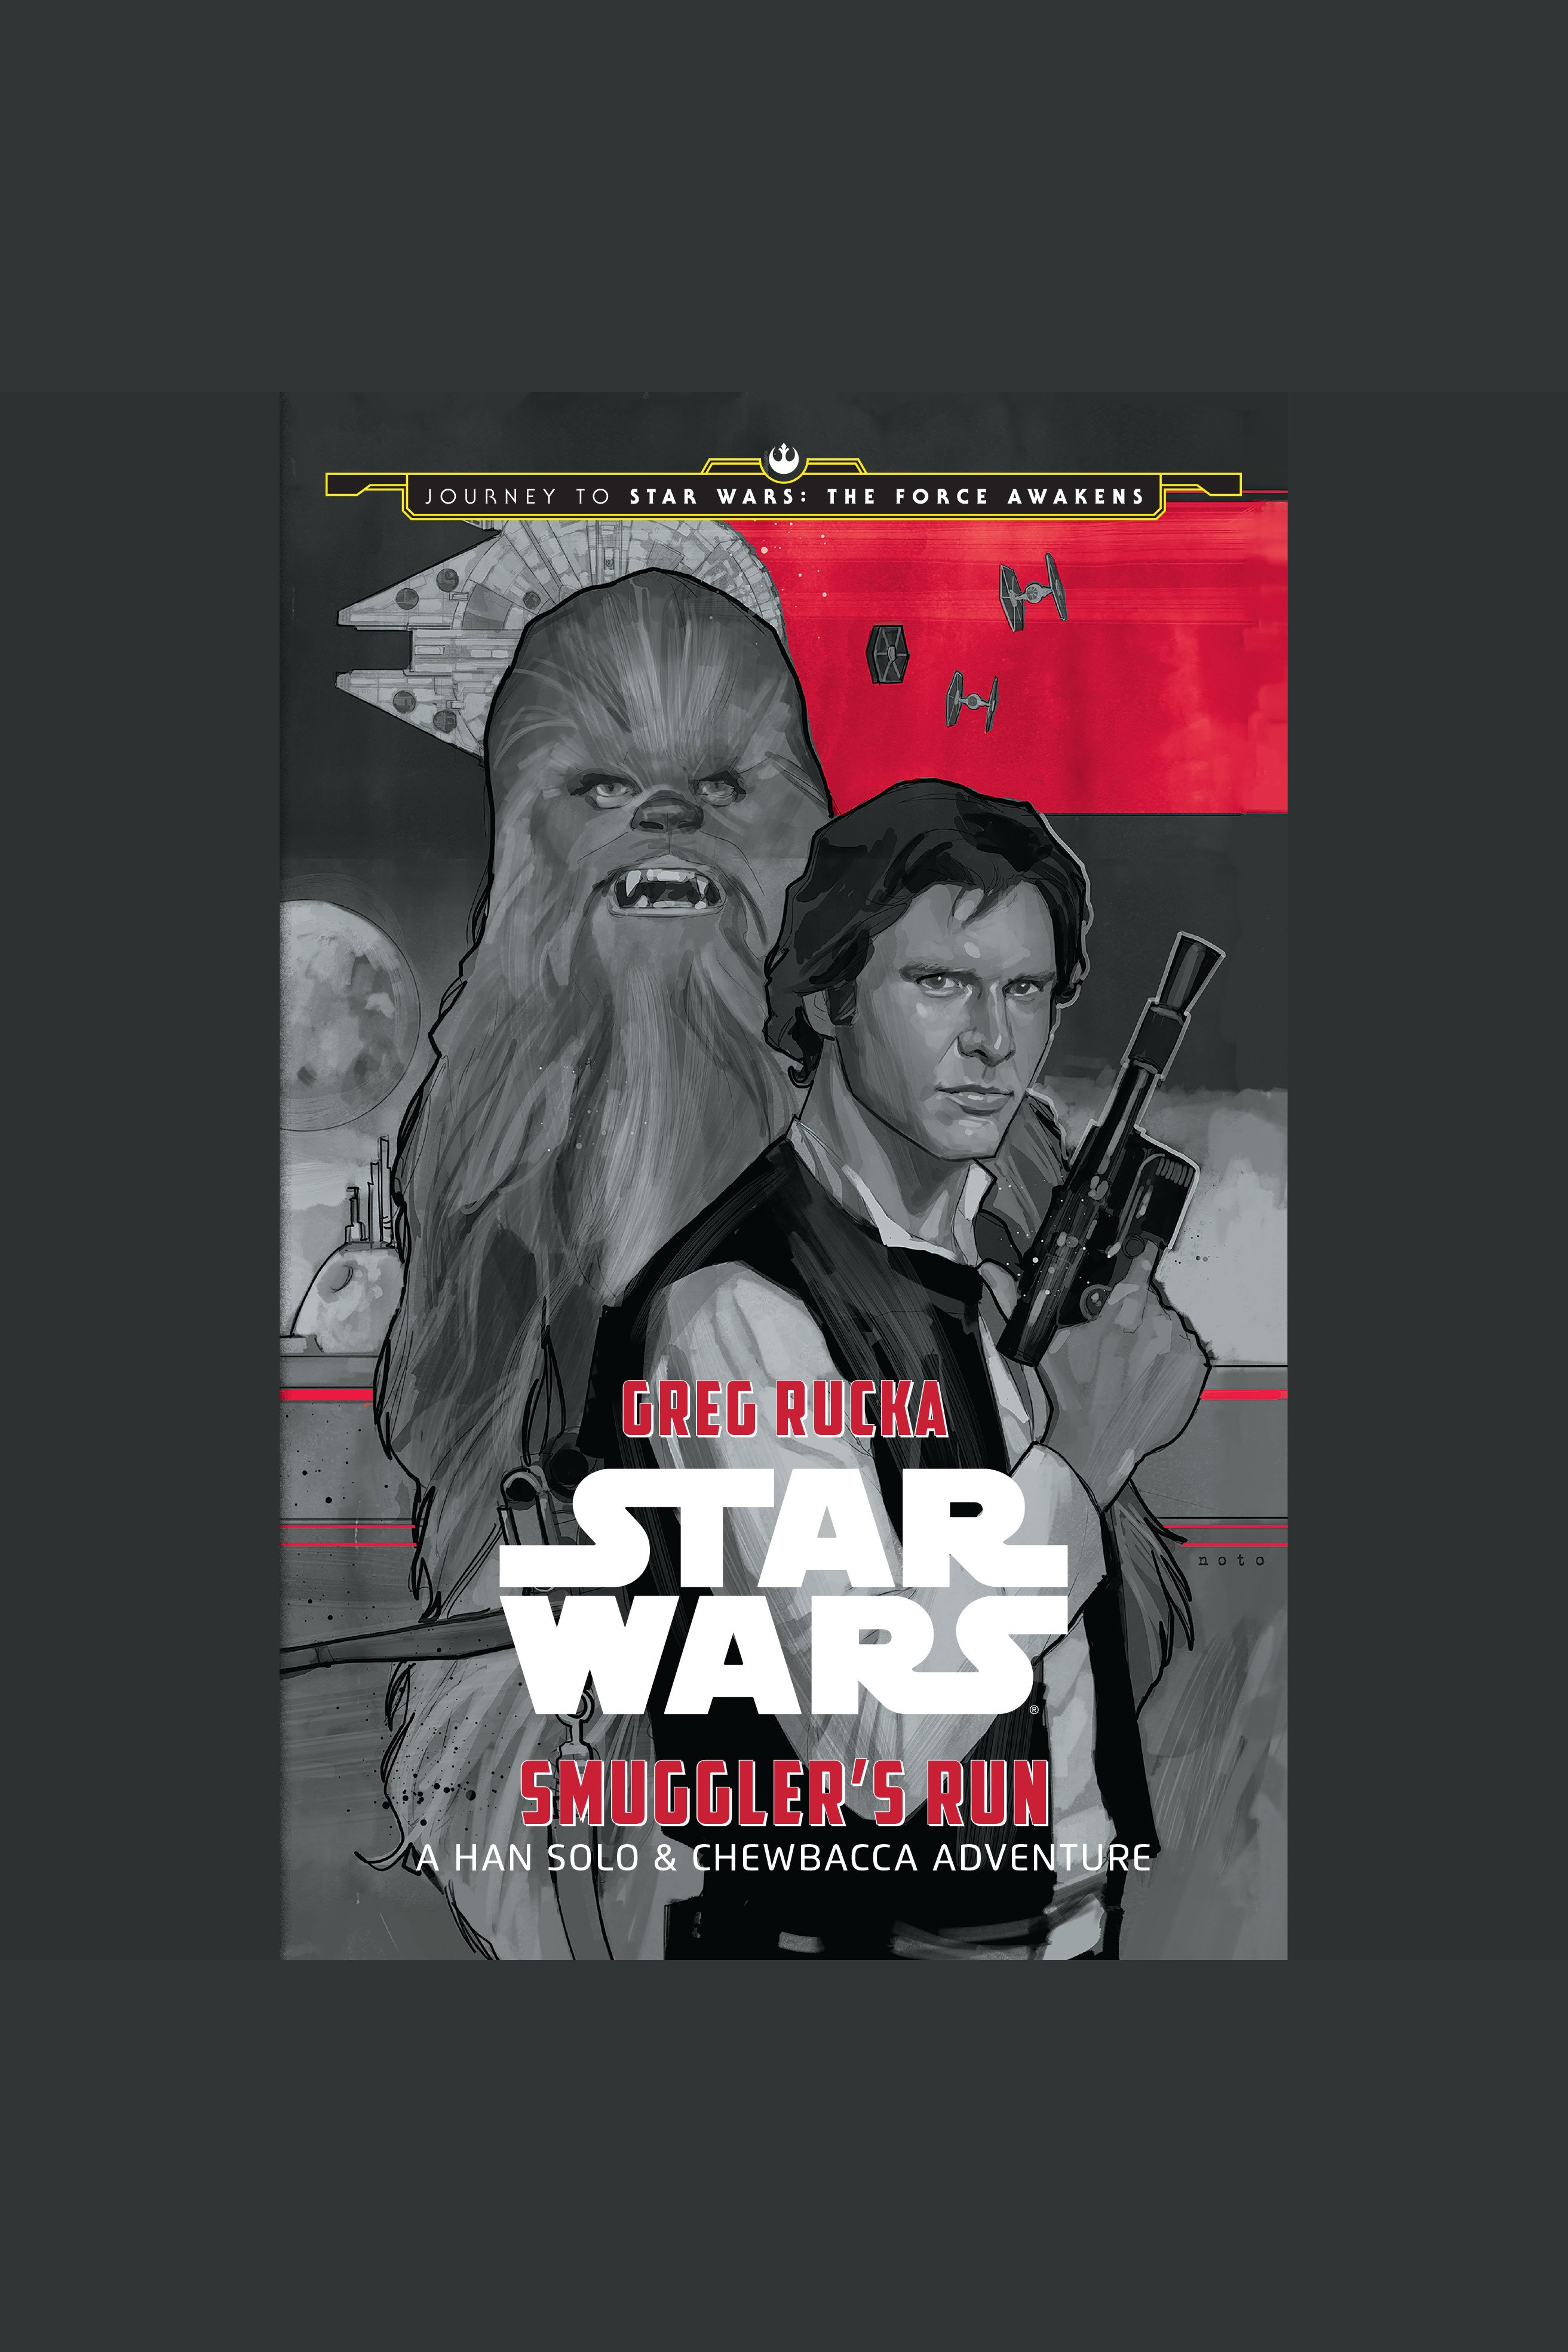 Star Wars Smuggler's run a Han Solo & Chewbacca adventure cover image